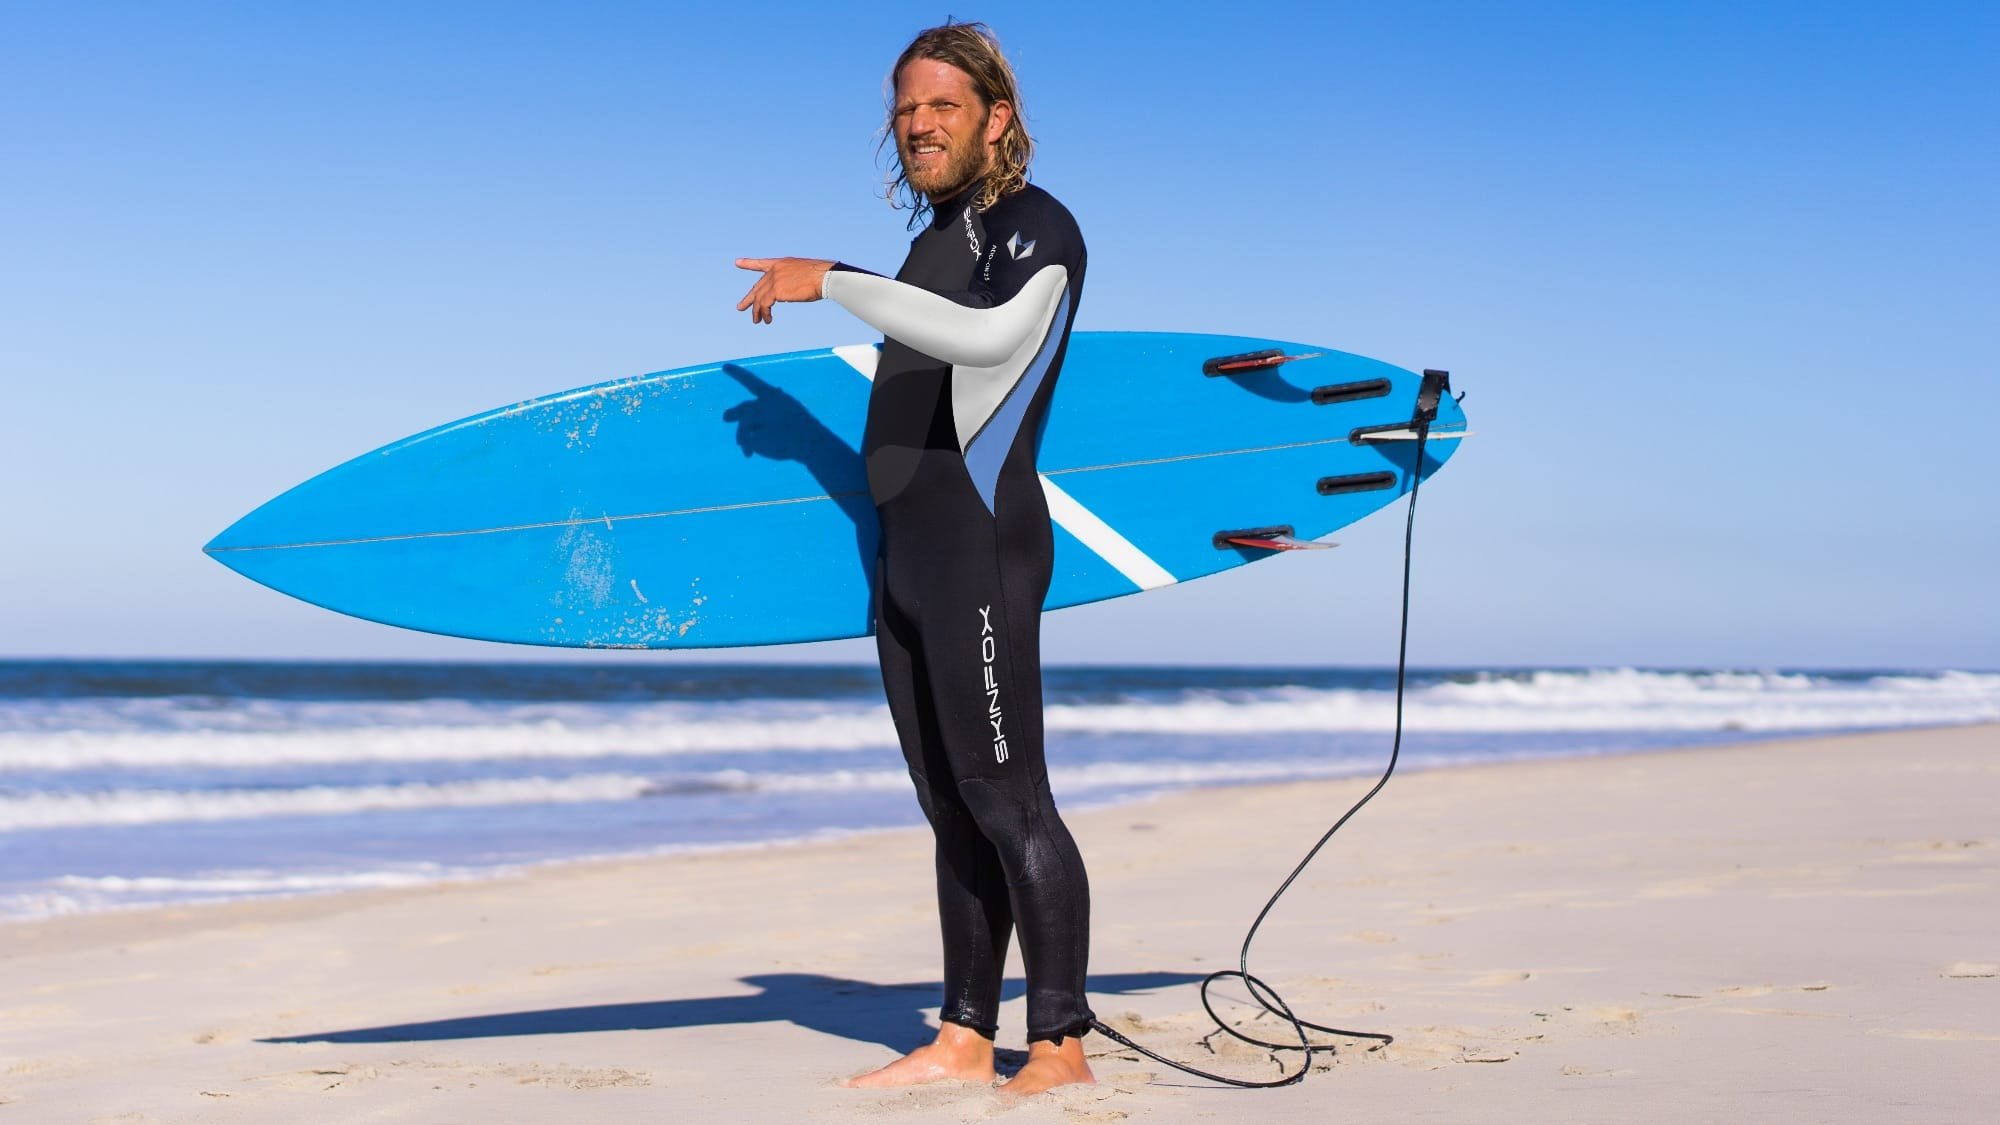 Skinfox Leader Add-On 4-in-1 wetsuit expands to keep you warm in every season